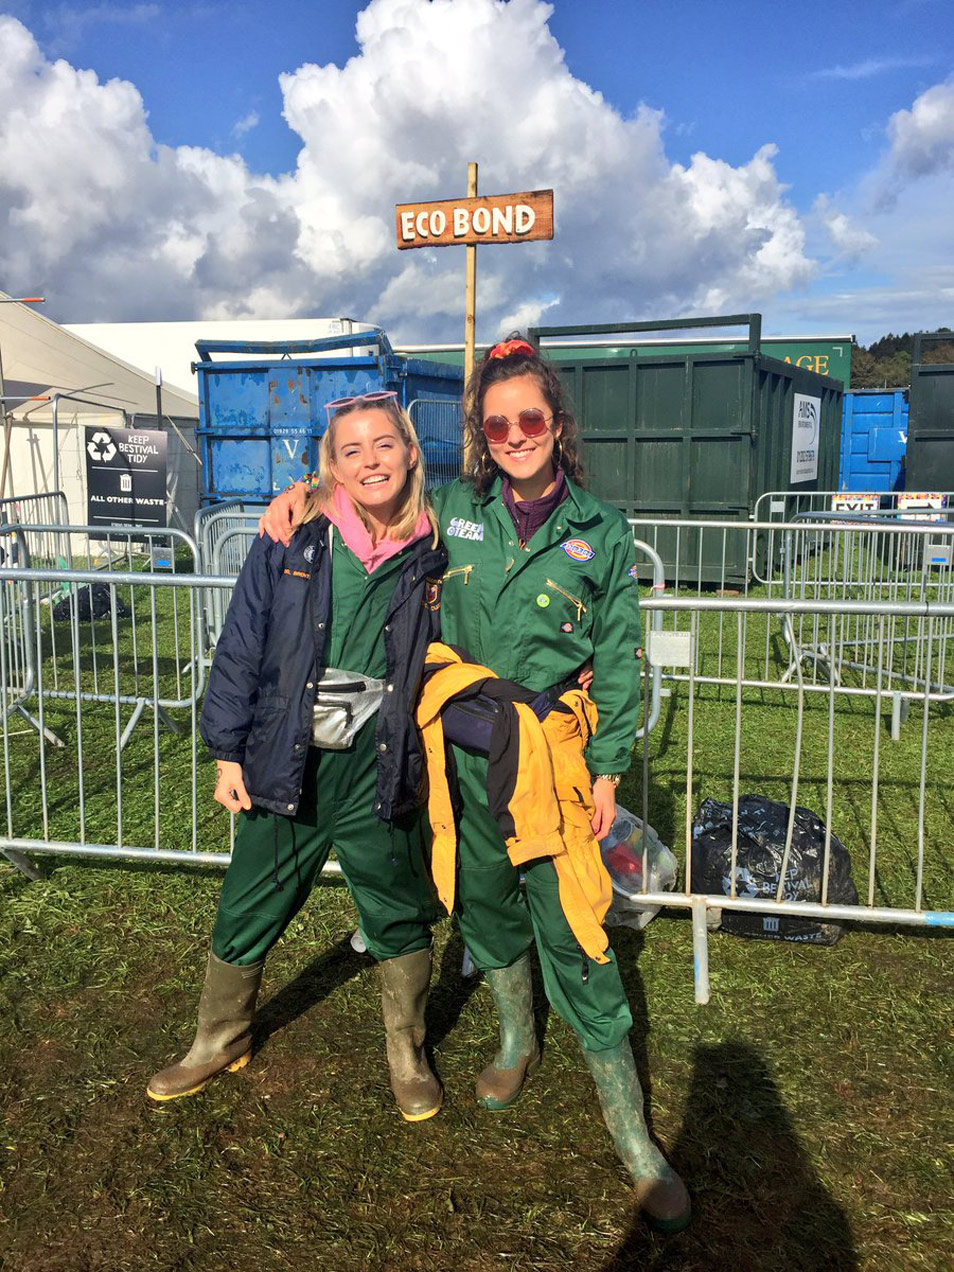 Robyn and I taking part at Bestival 2017 as Green team ambassadors, outside the eco bond hub.